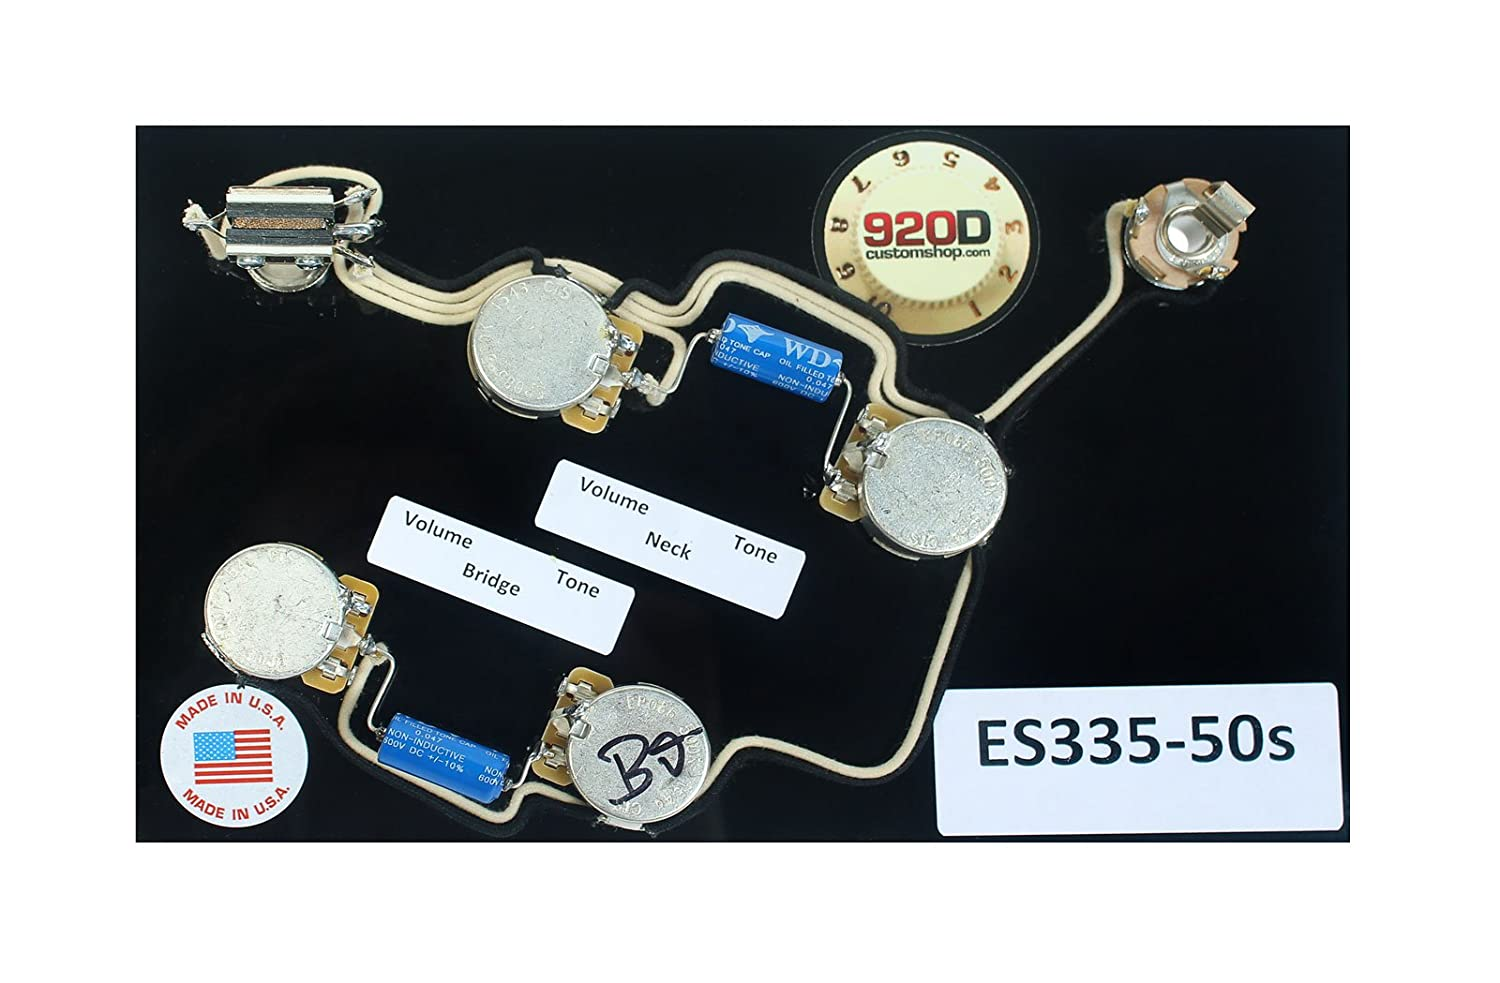 71WKu5VvXoL._SL1500_ amazon com 920d es 335 50's wiring harness for gibson cts Epiphone Pickup Wiring at eliteediting.co